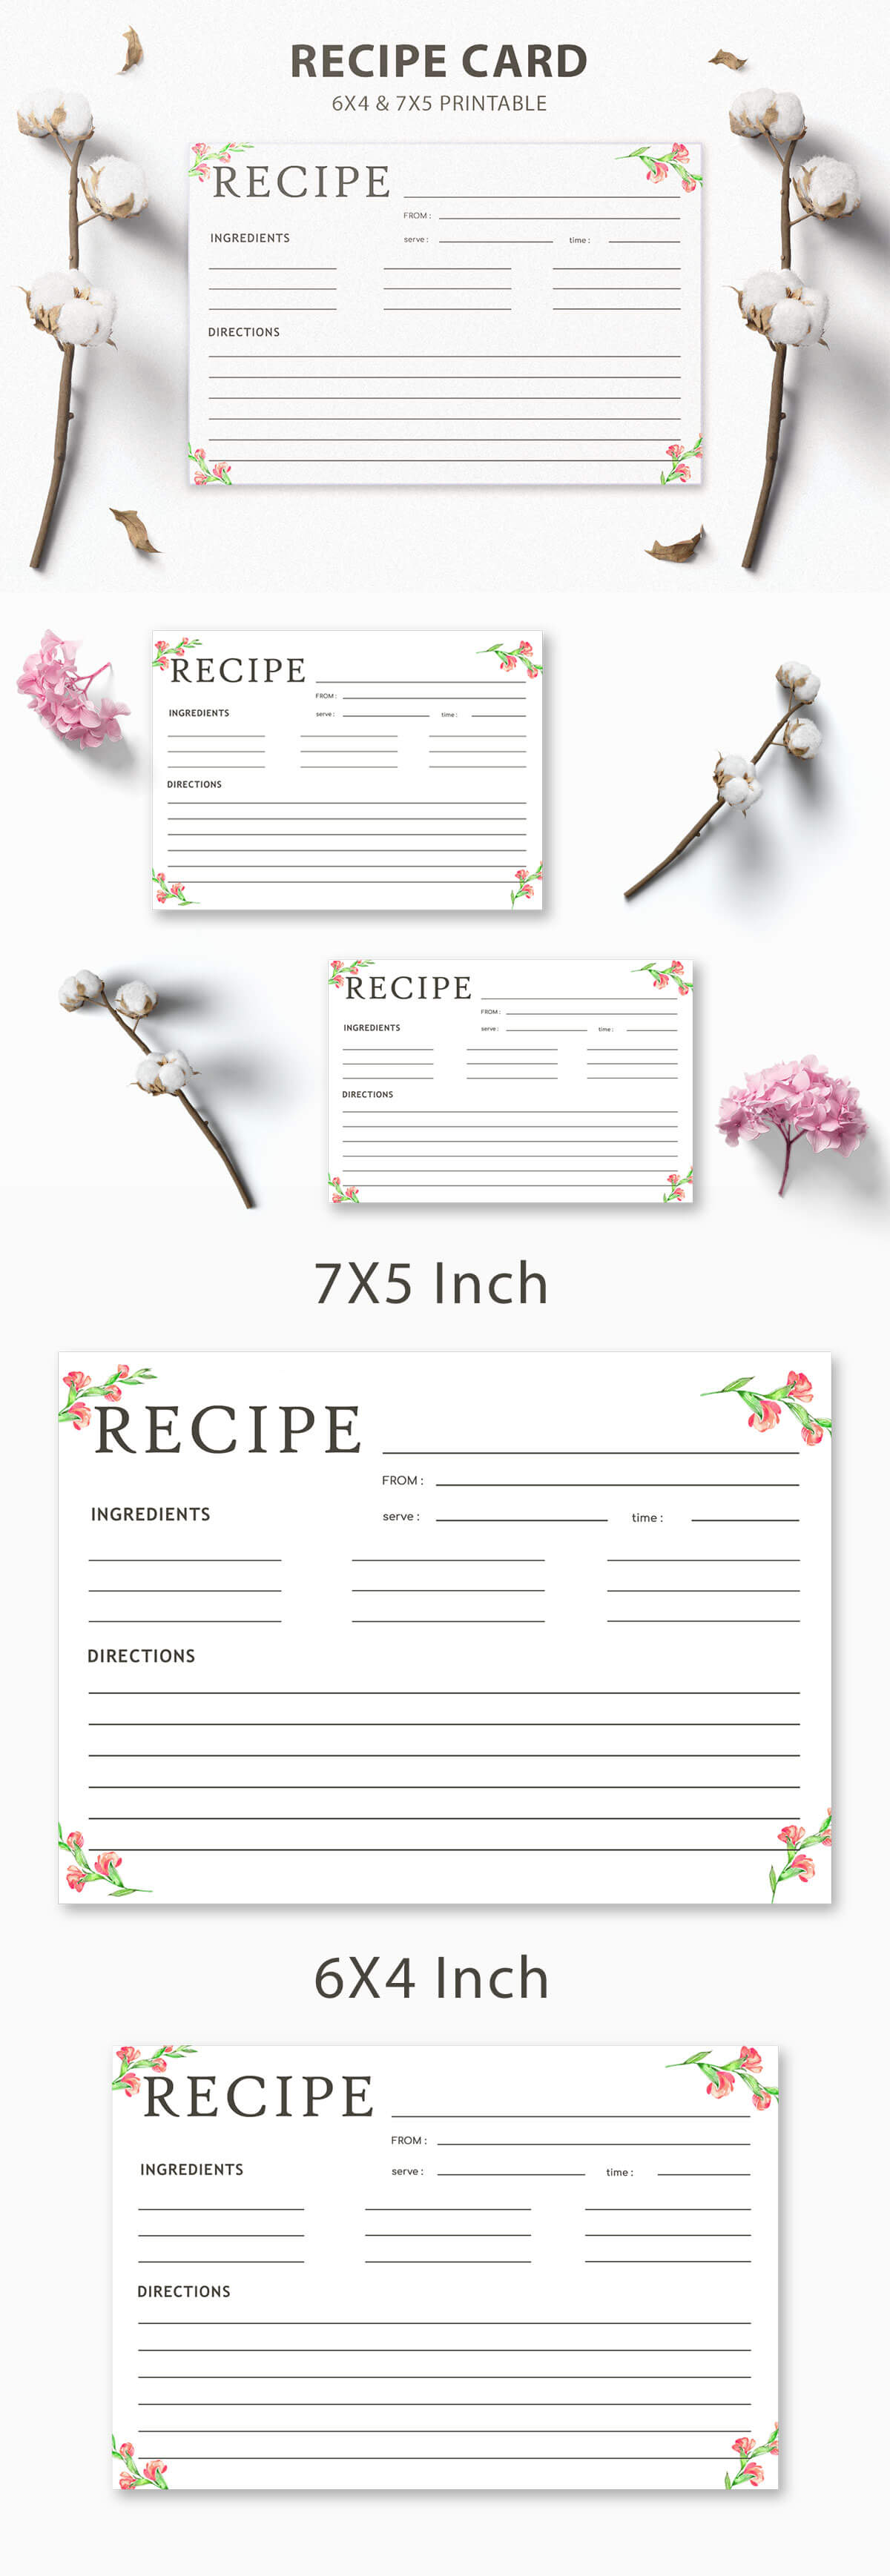 Free Recipe Card Printable Template V3